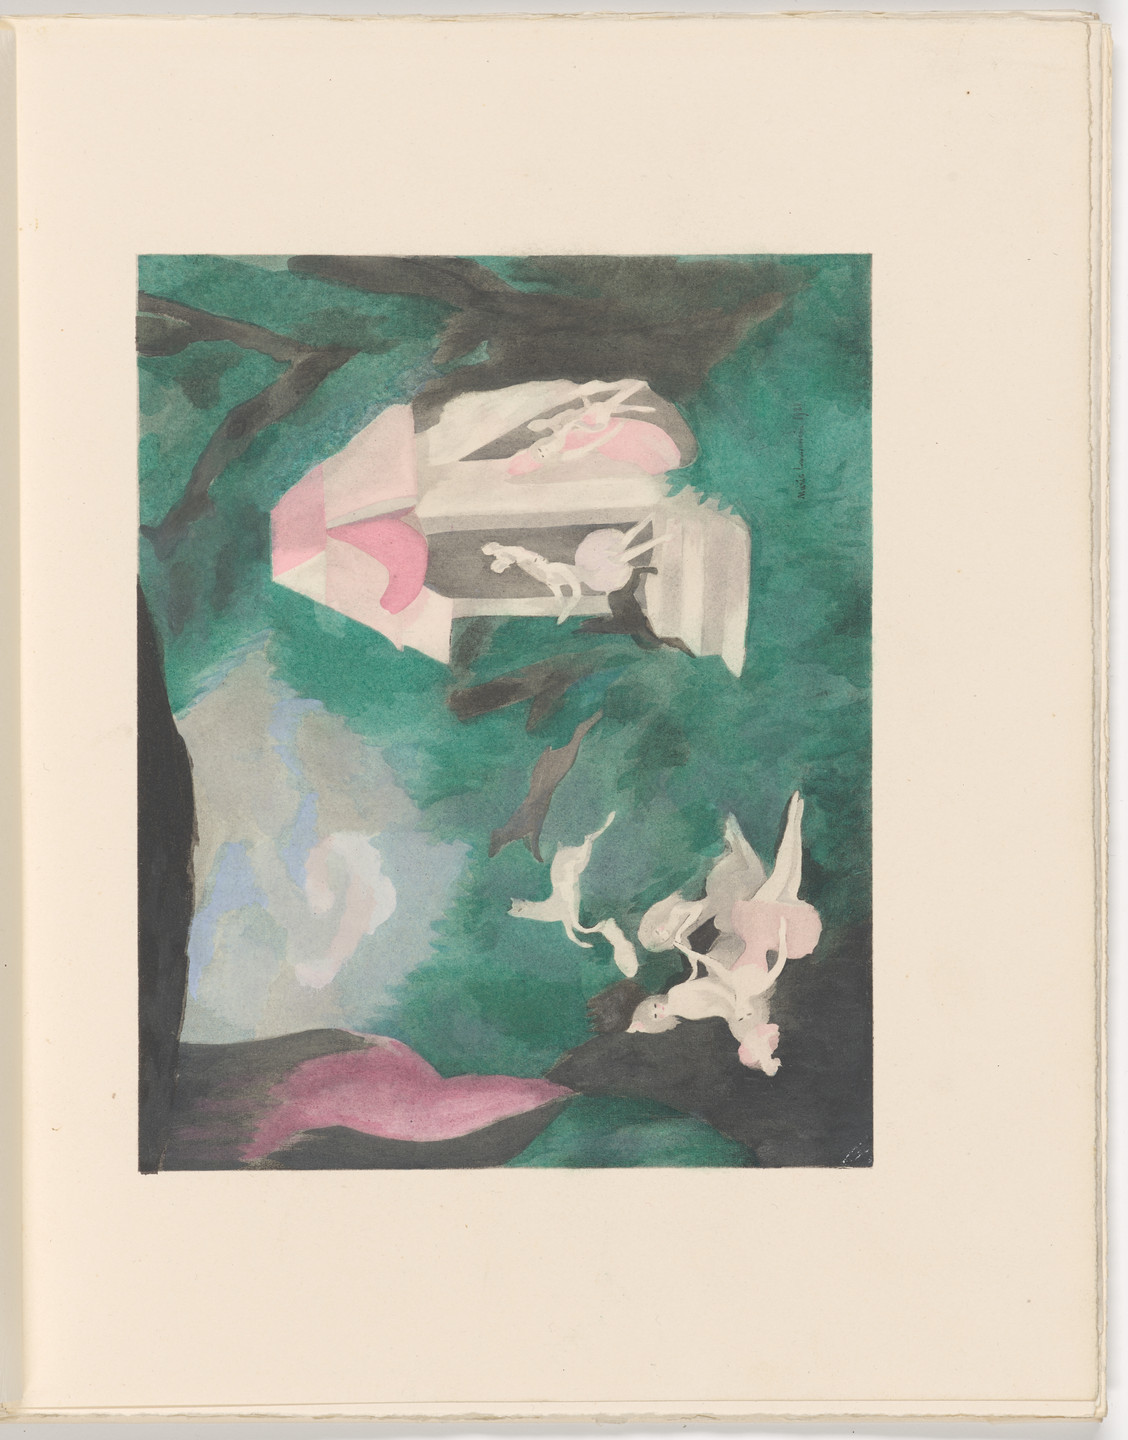 Marie Laurencin. Plate (folio 21) from Les Biches, vol. I. 1924